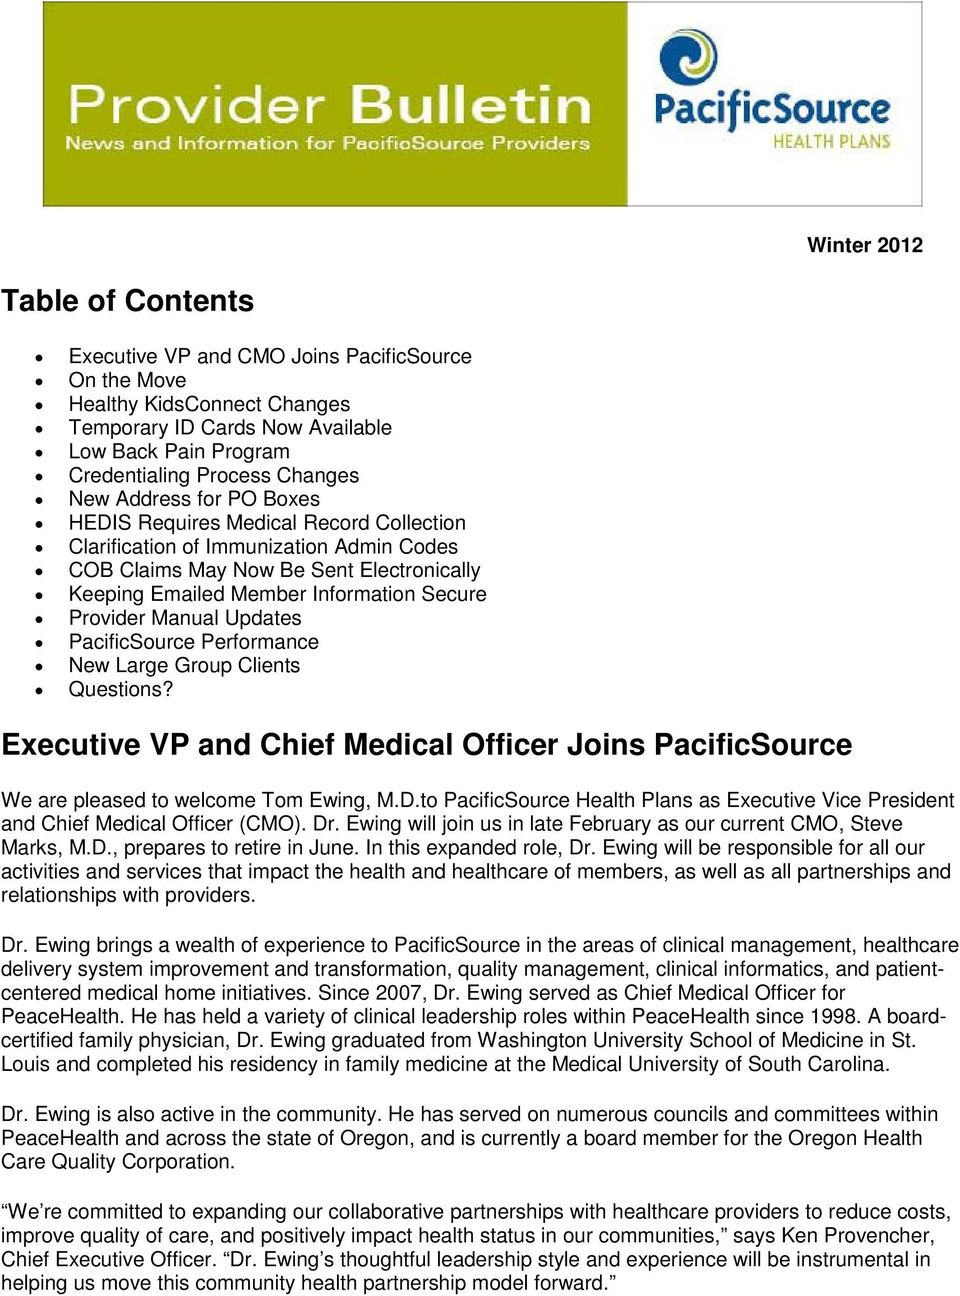 Executive Vp And Chief Medical Officer Joins Pacificsource Pdf